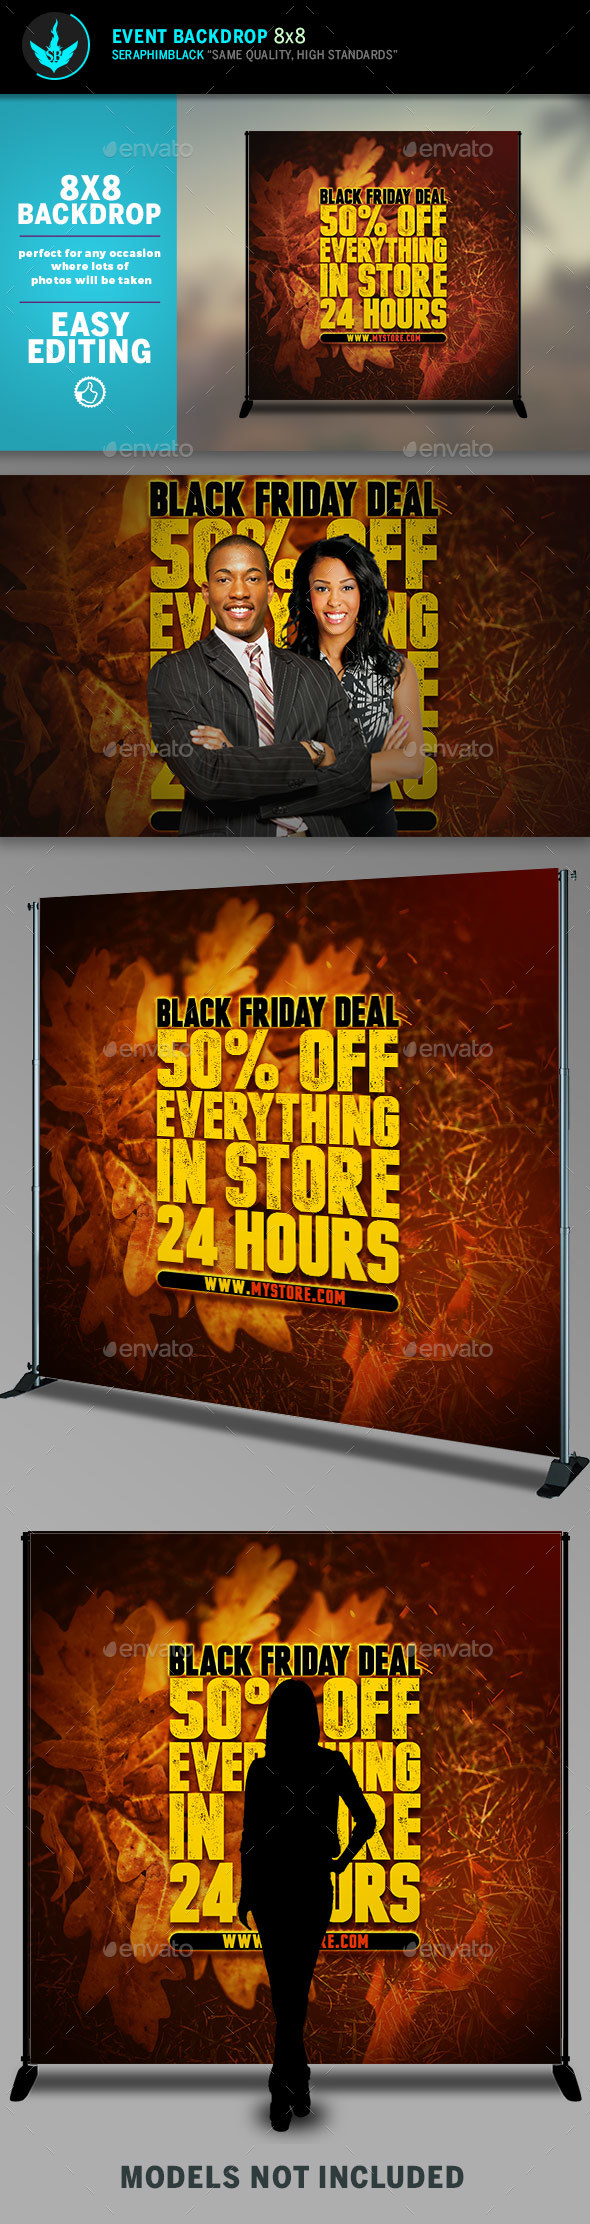 GraphicRiver Fall Sale 8x8 Event Backdrop Template 20463281